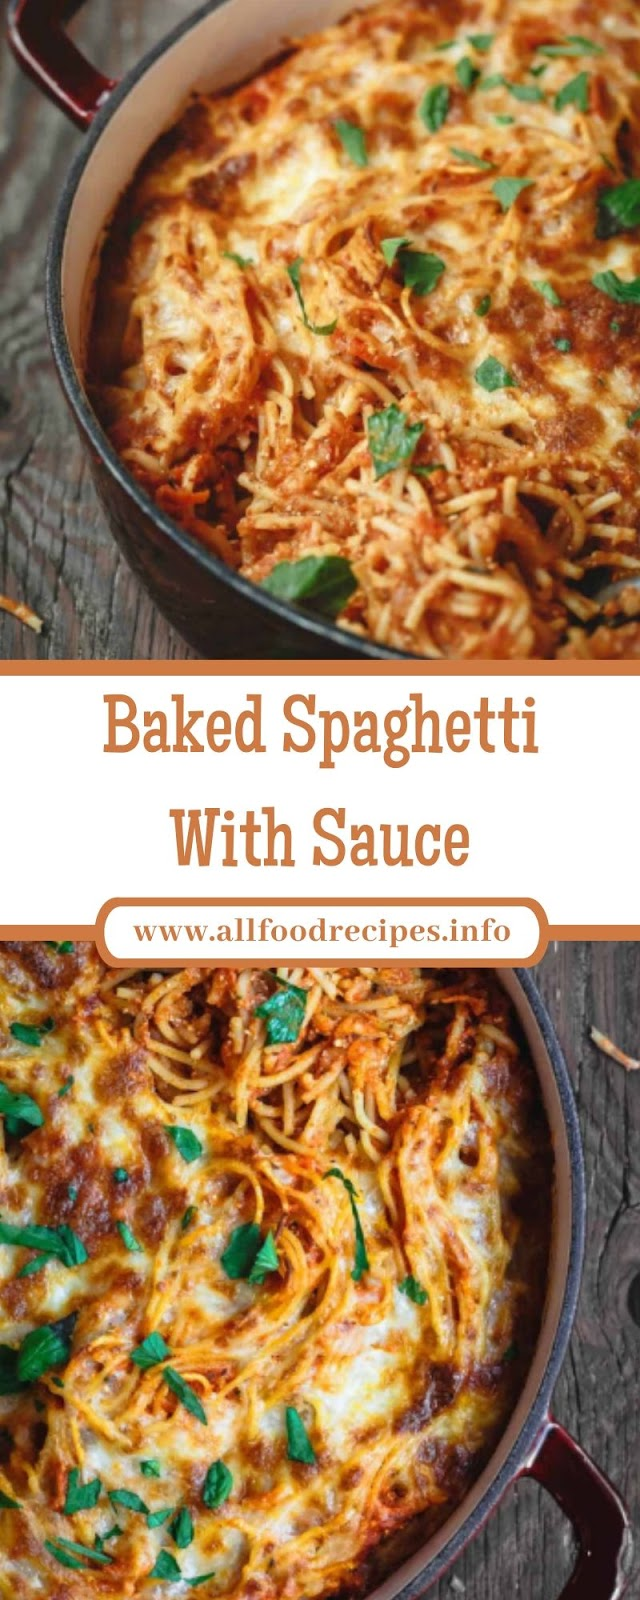 Baked Spaghetti With Sauce